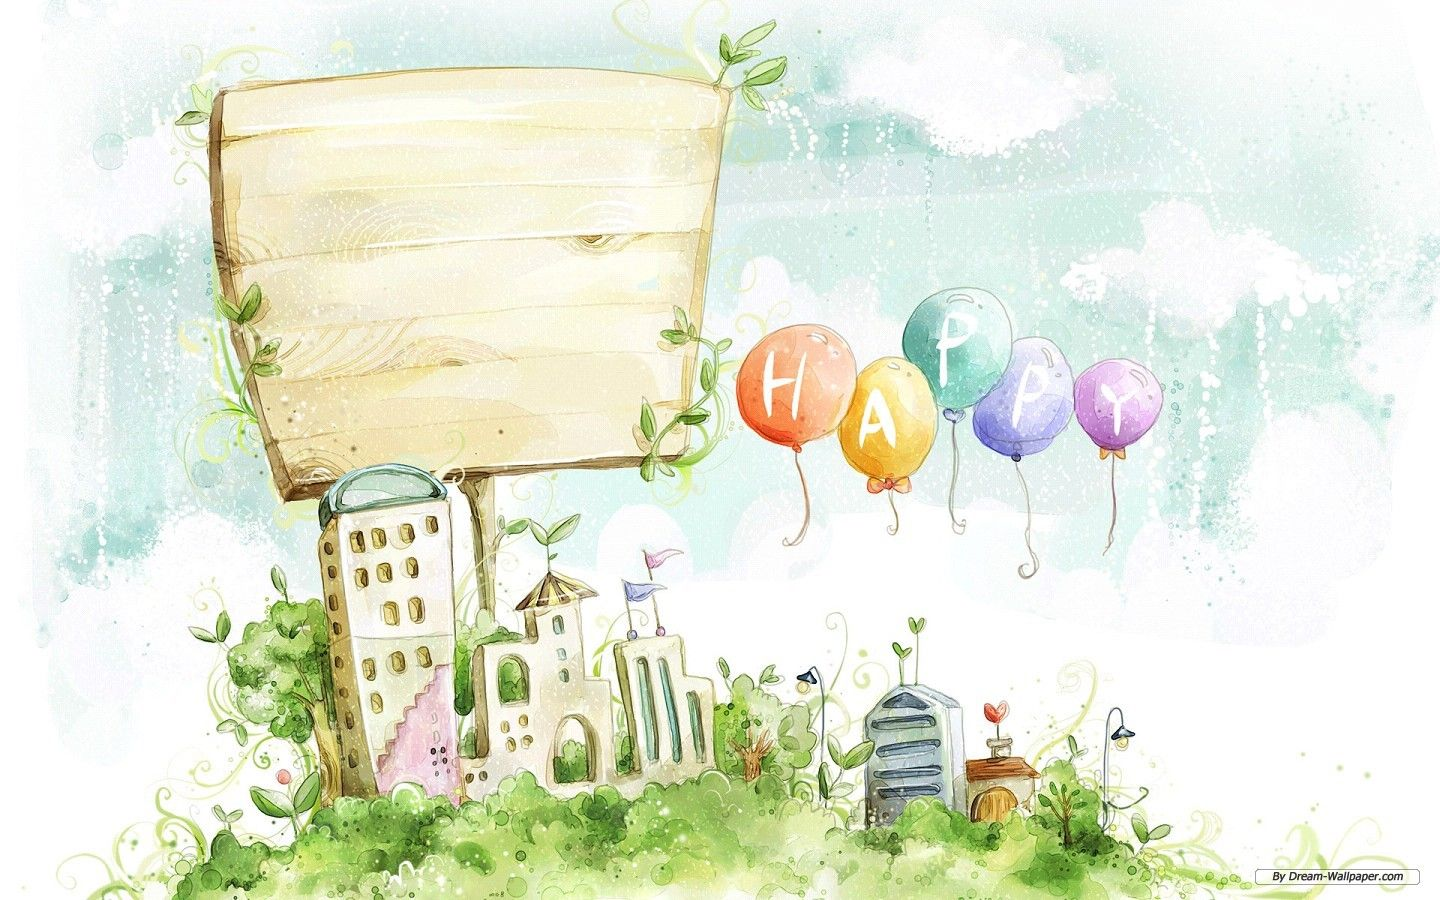 free art wallpaper - drawing beautiful scenery computer 1 wallpaper